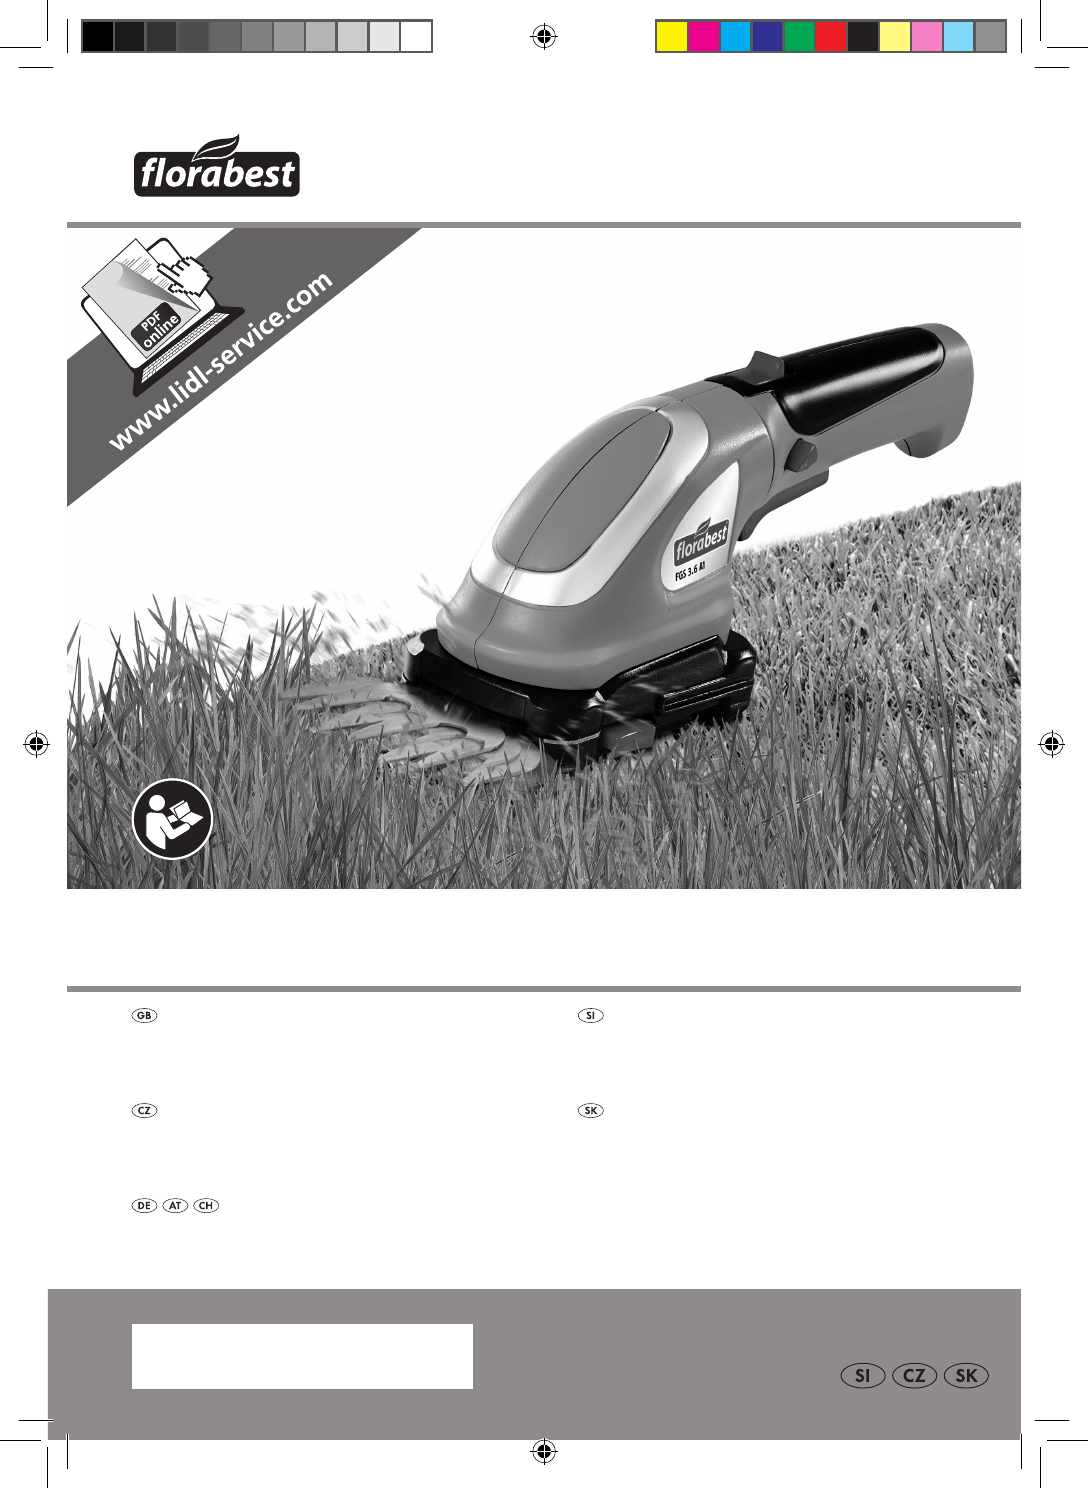 florabest fgs 3 6 a1 user manual 92 pages also for fgs 72 a1